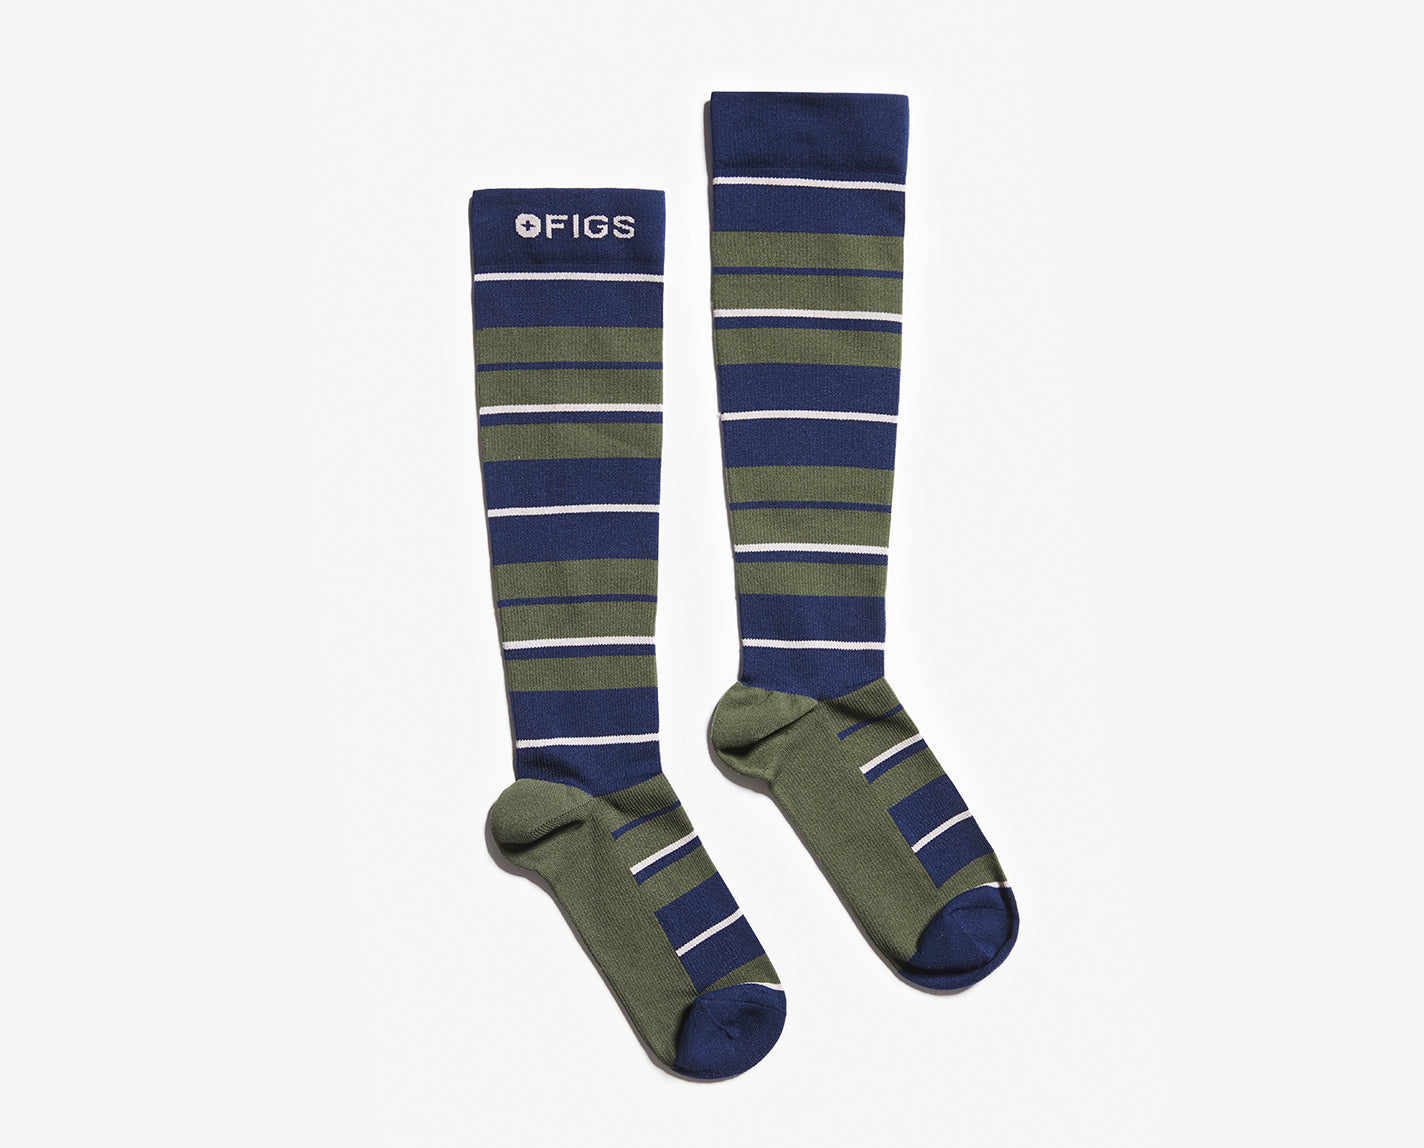 You've earned these stripes. Our 100% Awesome Compression Socks are what feet dreams are made of – they reduce muscle fatigue, increase blood circulation and absorb shock. Plus, they're breathable, ridiculously soft and feature our proprietary FIONdry moisture-wicking technology.